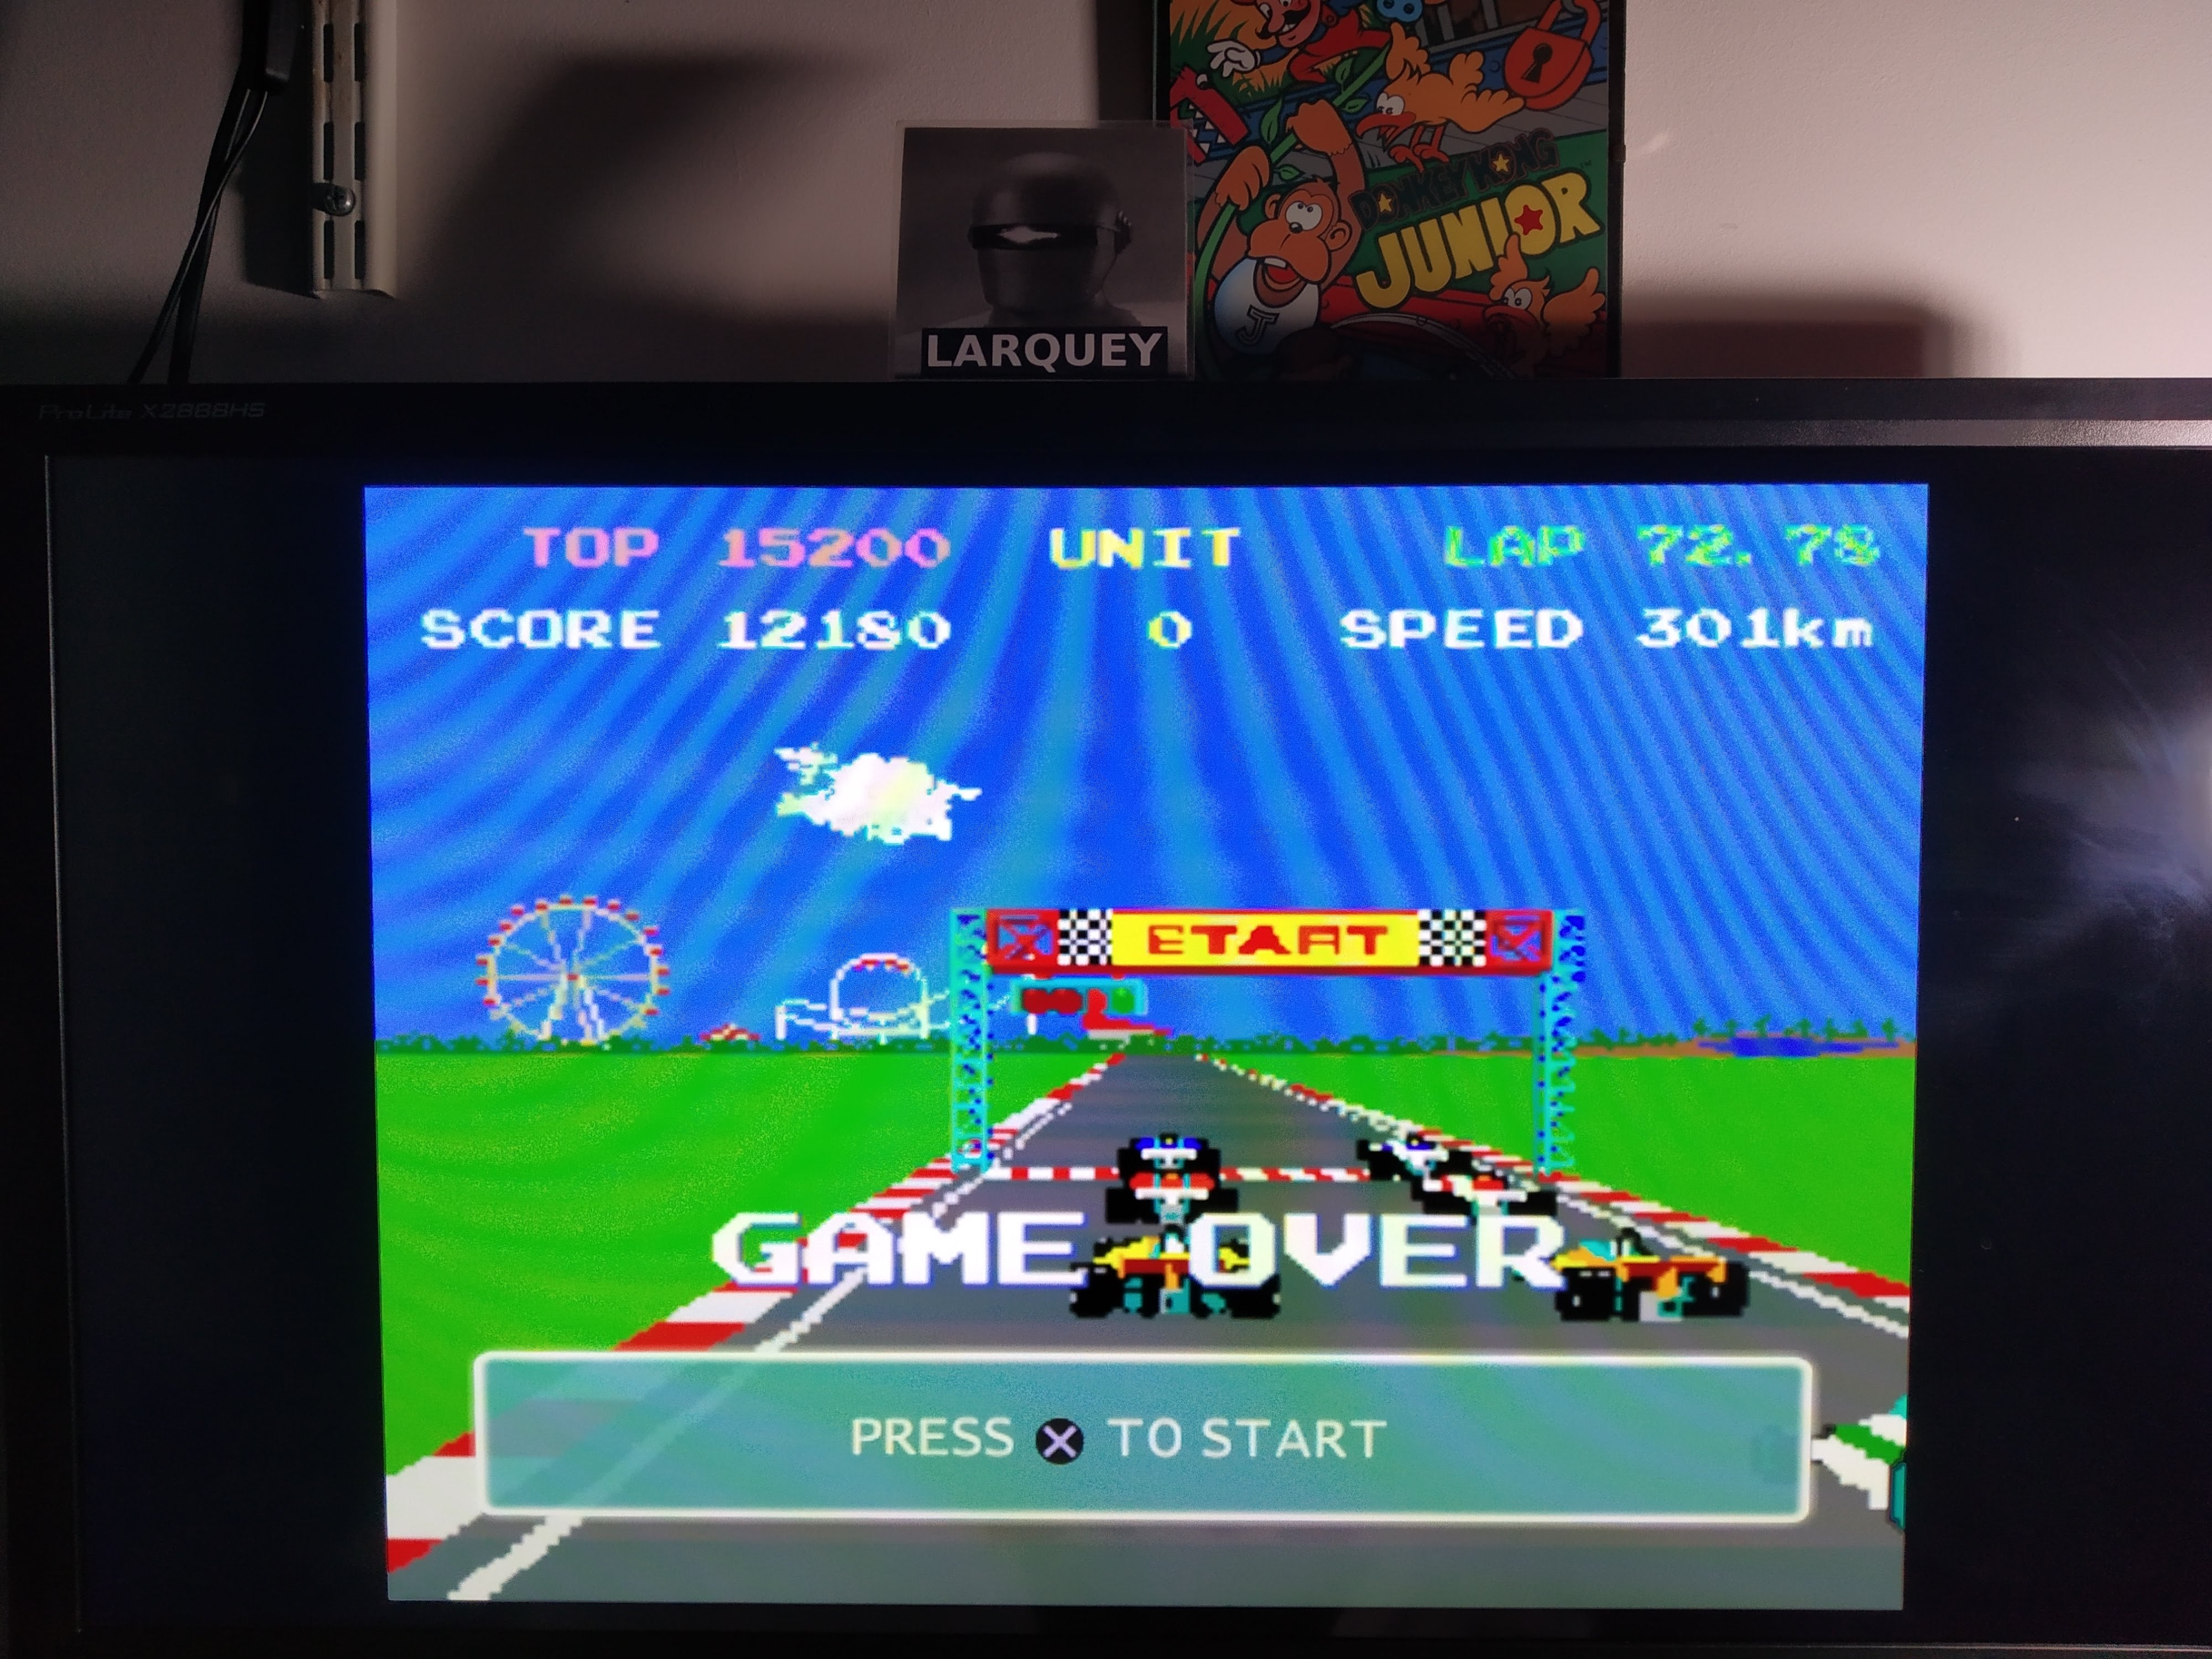 Larquey: Namco Museum 50th Anniversary: Pole Position II [Test Track] (Playstation 2 Emulated) 12,180 points on 2020-08-06 15:12:18